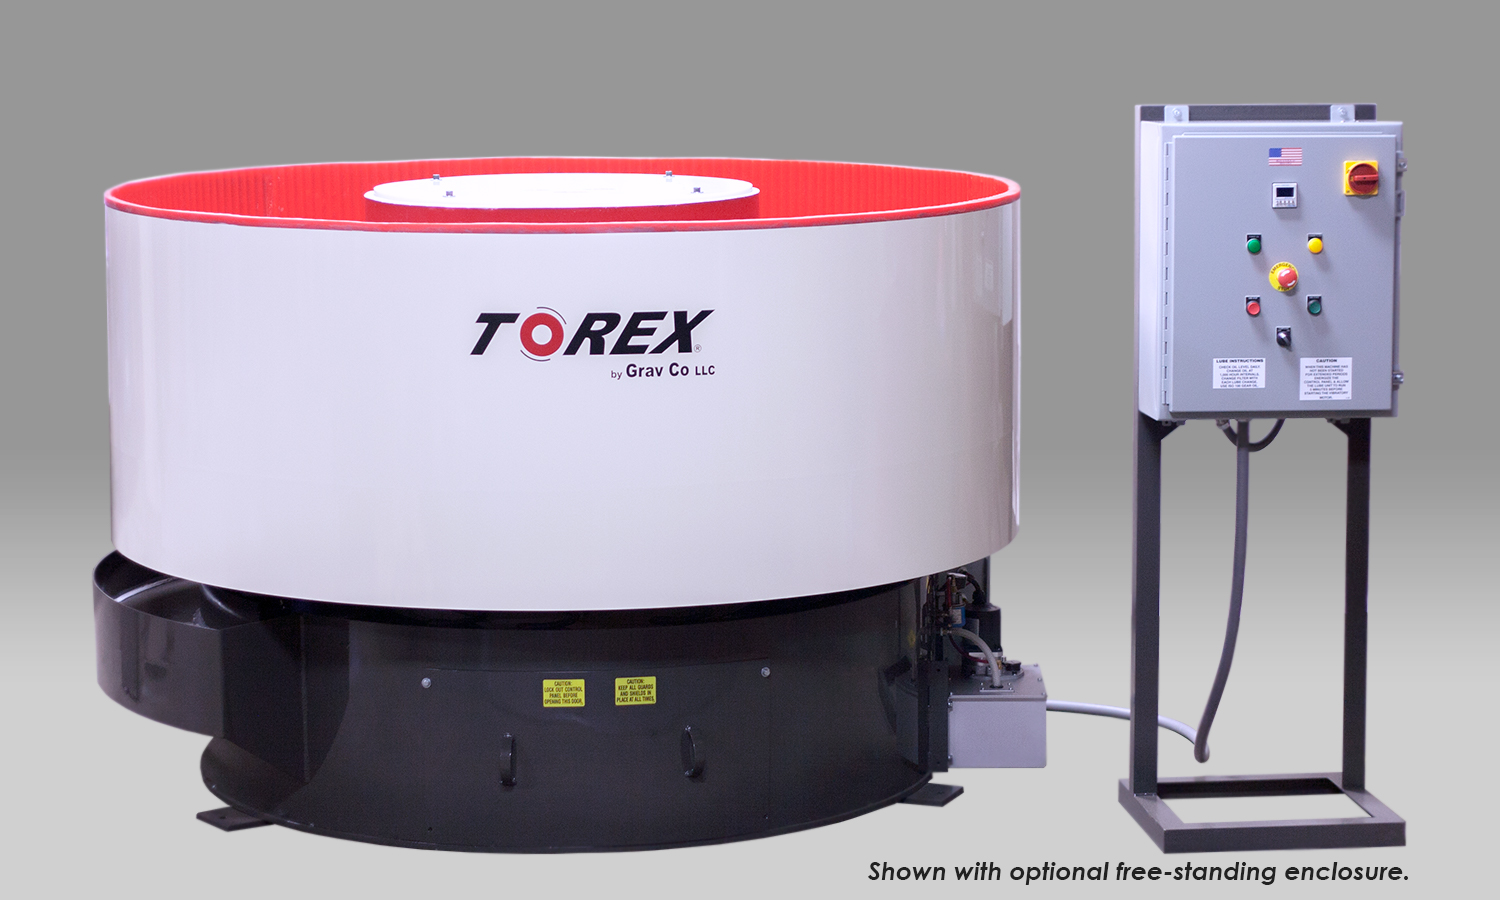 Torex Batch Finishing Bowl Sturgis Llc Machines Media And Compounds